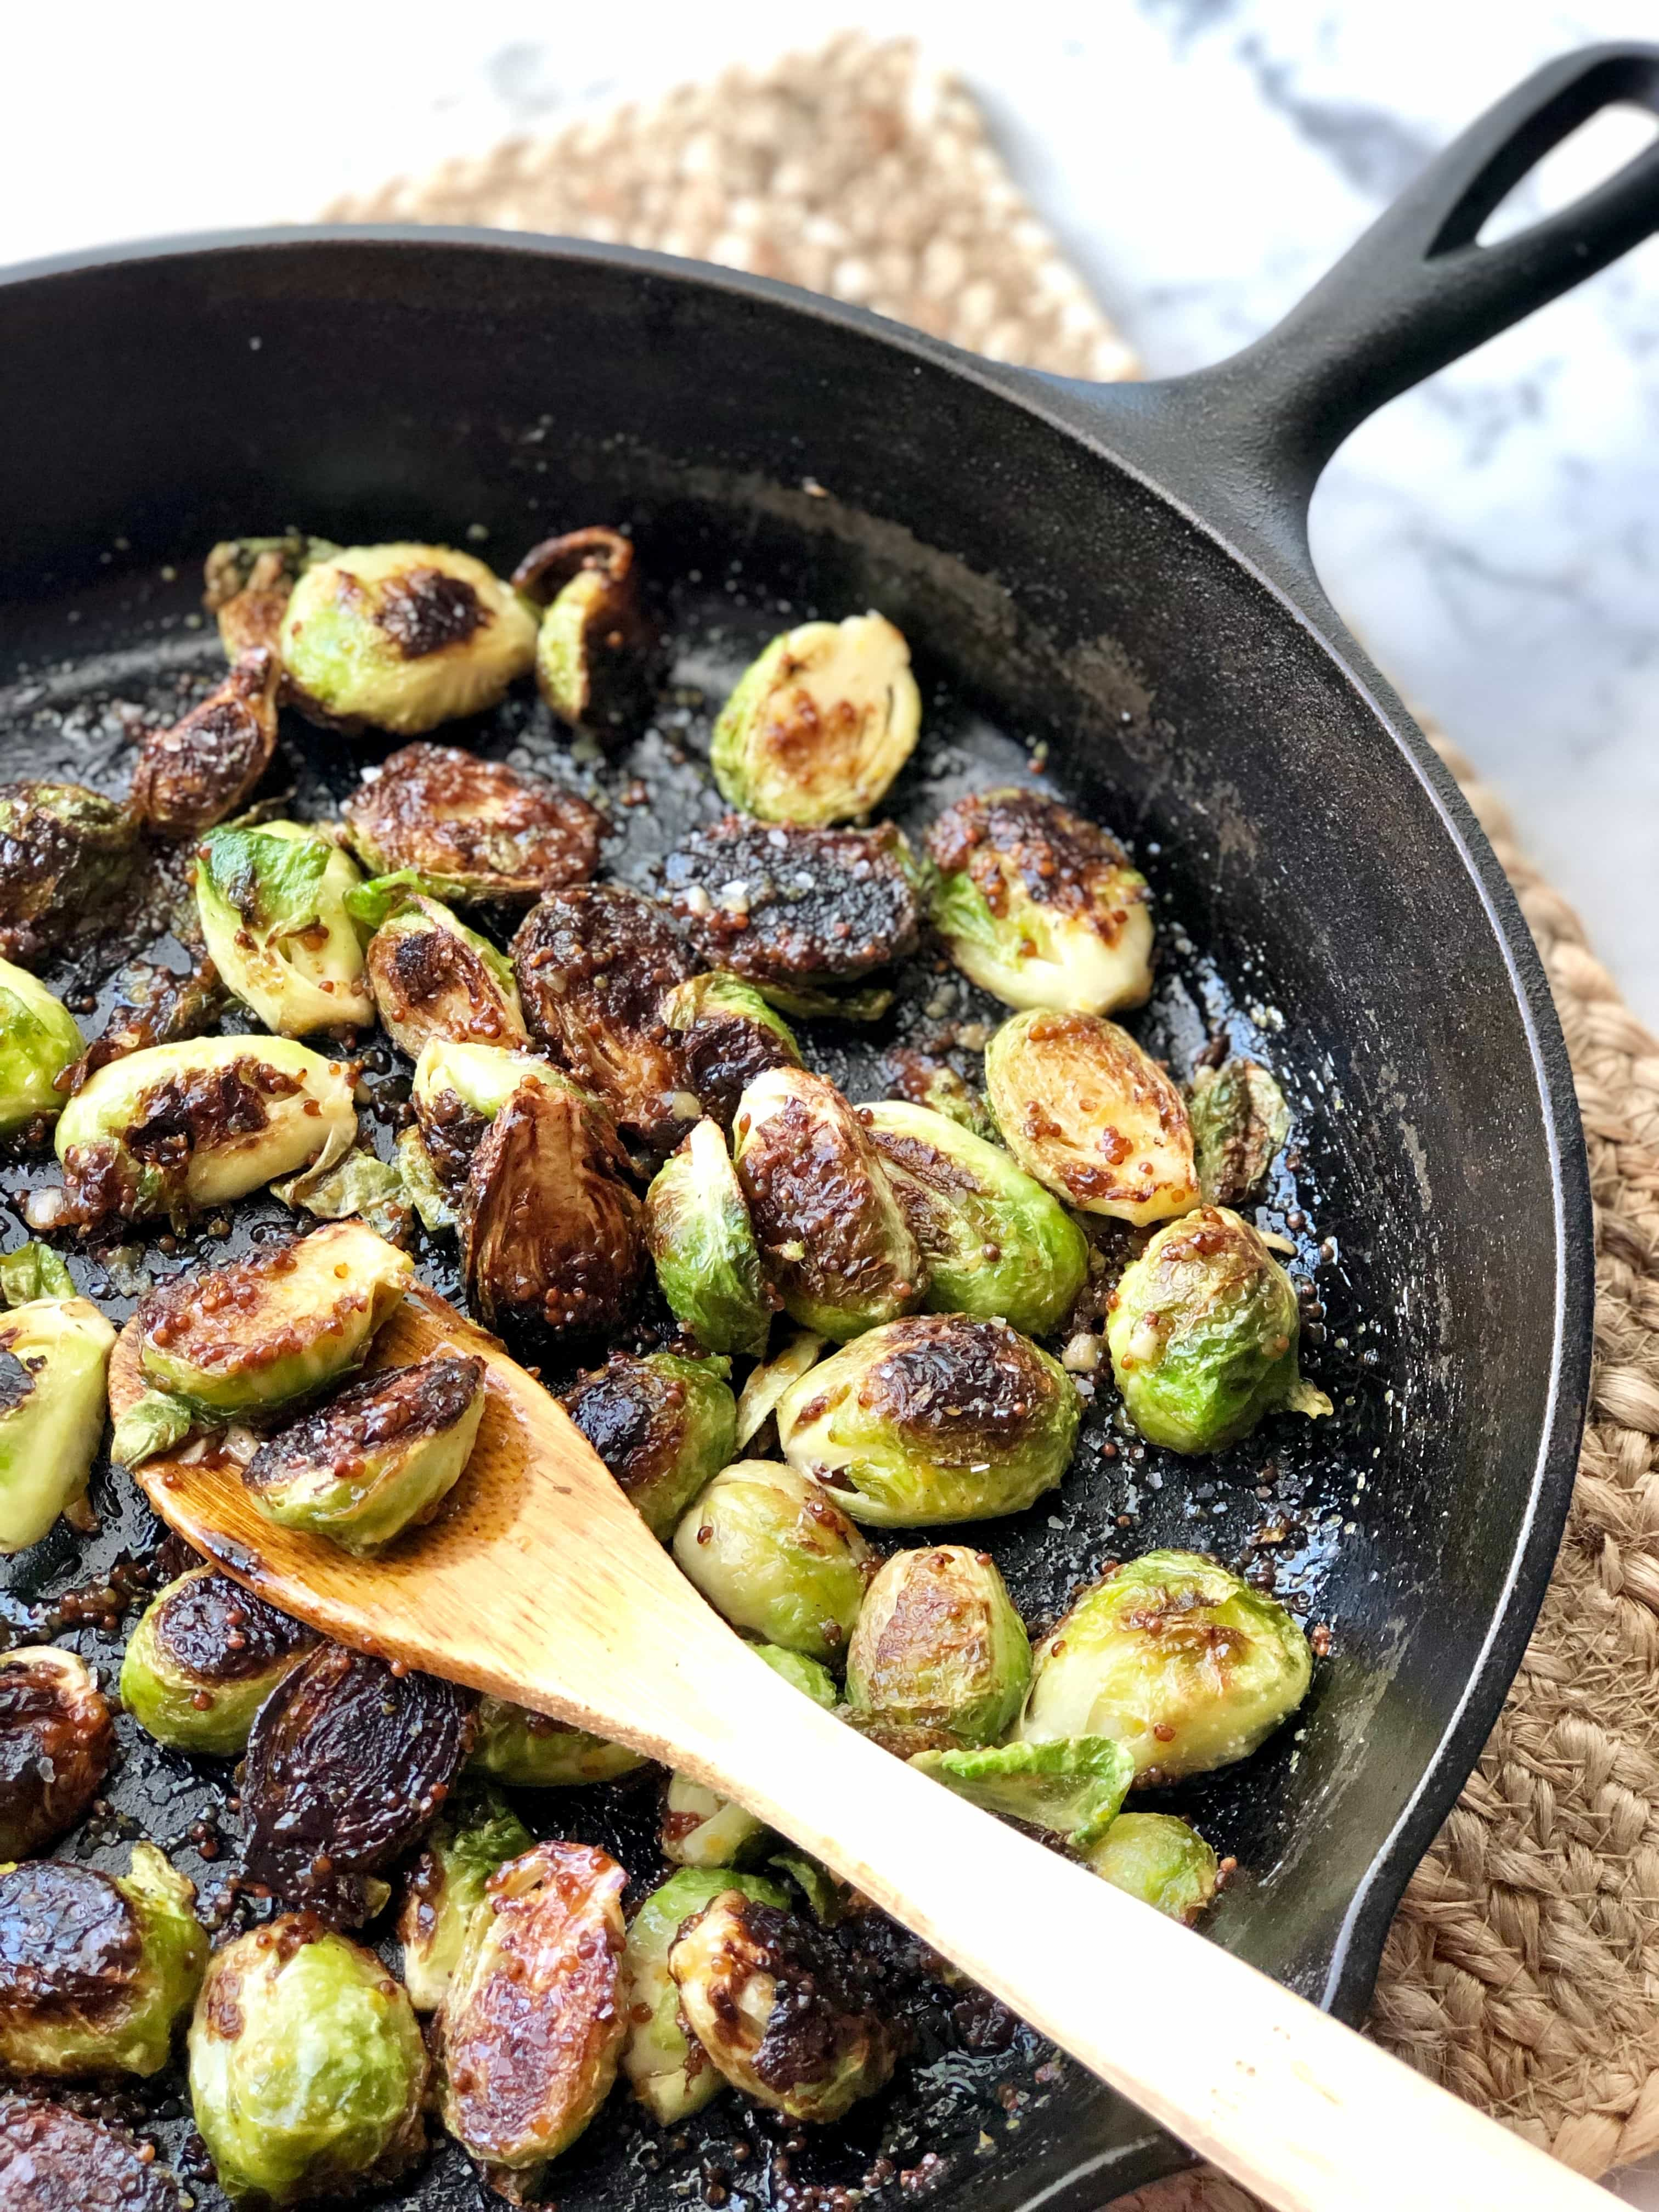 fried brussels sprouts in a honey mustard sauce